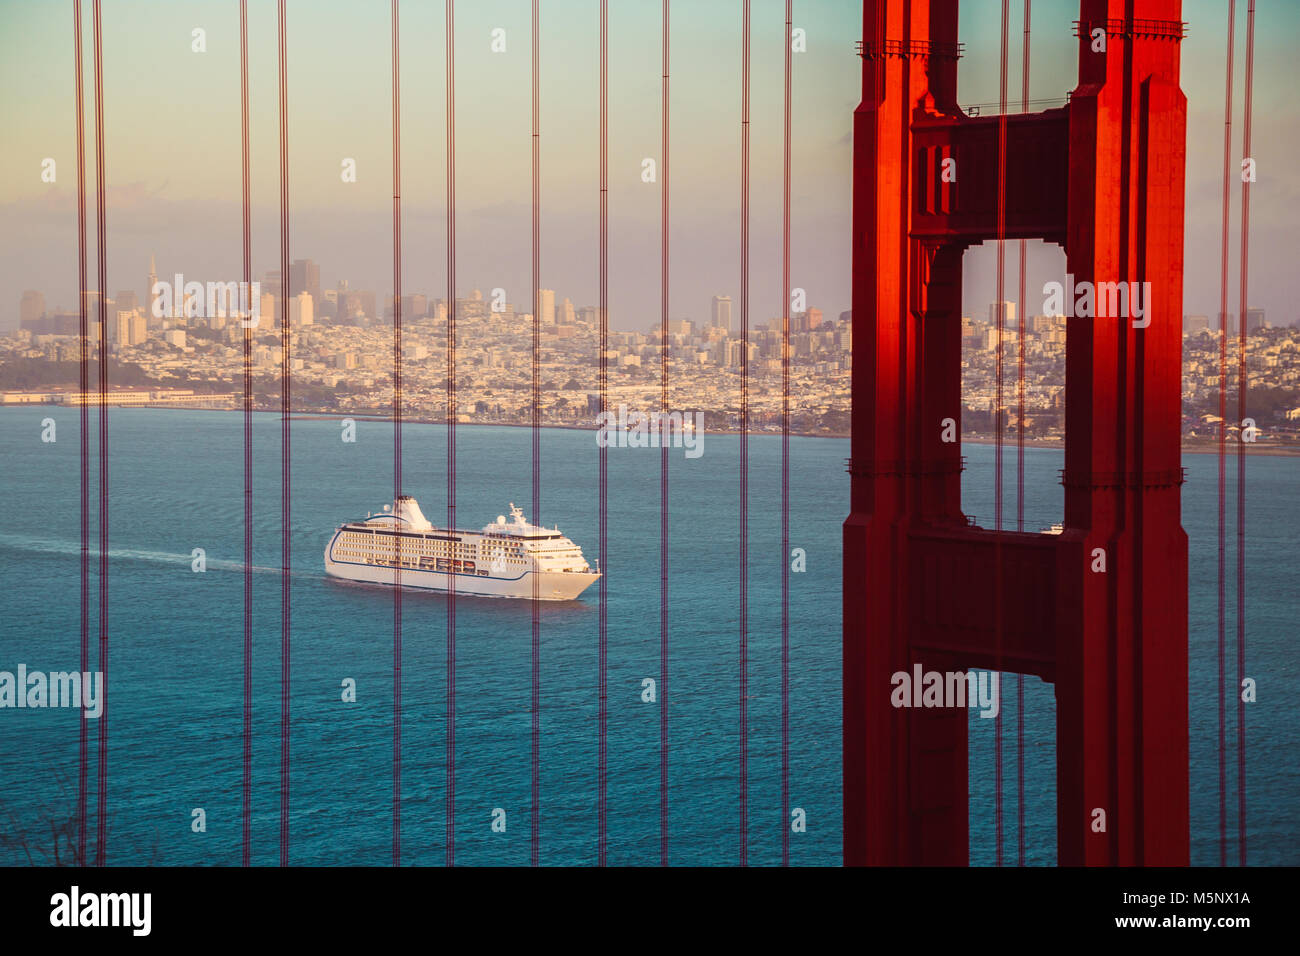 Cruise ship at famous Golden Gate Bridge with the skyline of San Francisco in the background in golden evening light - Stock Image